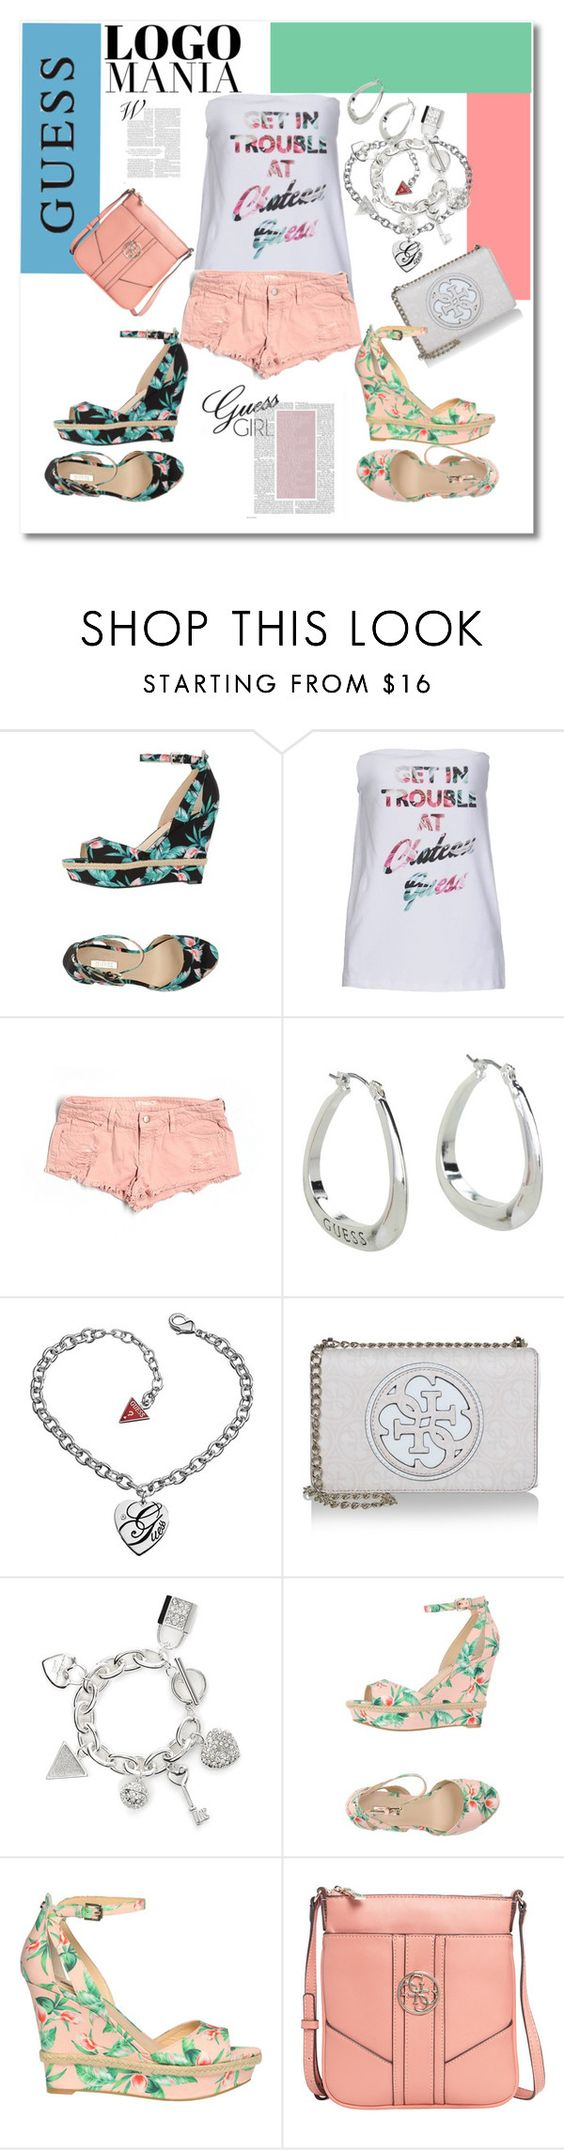 """""""GetInTrouble"""" by andrea2andare ❤ liked on Polyvore featuring мода, GUESS и polyvoreeditorial"""